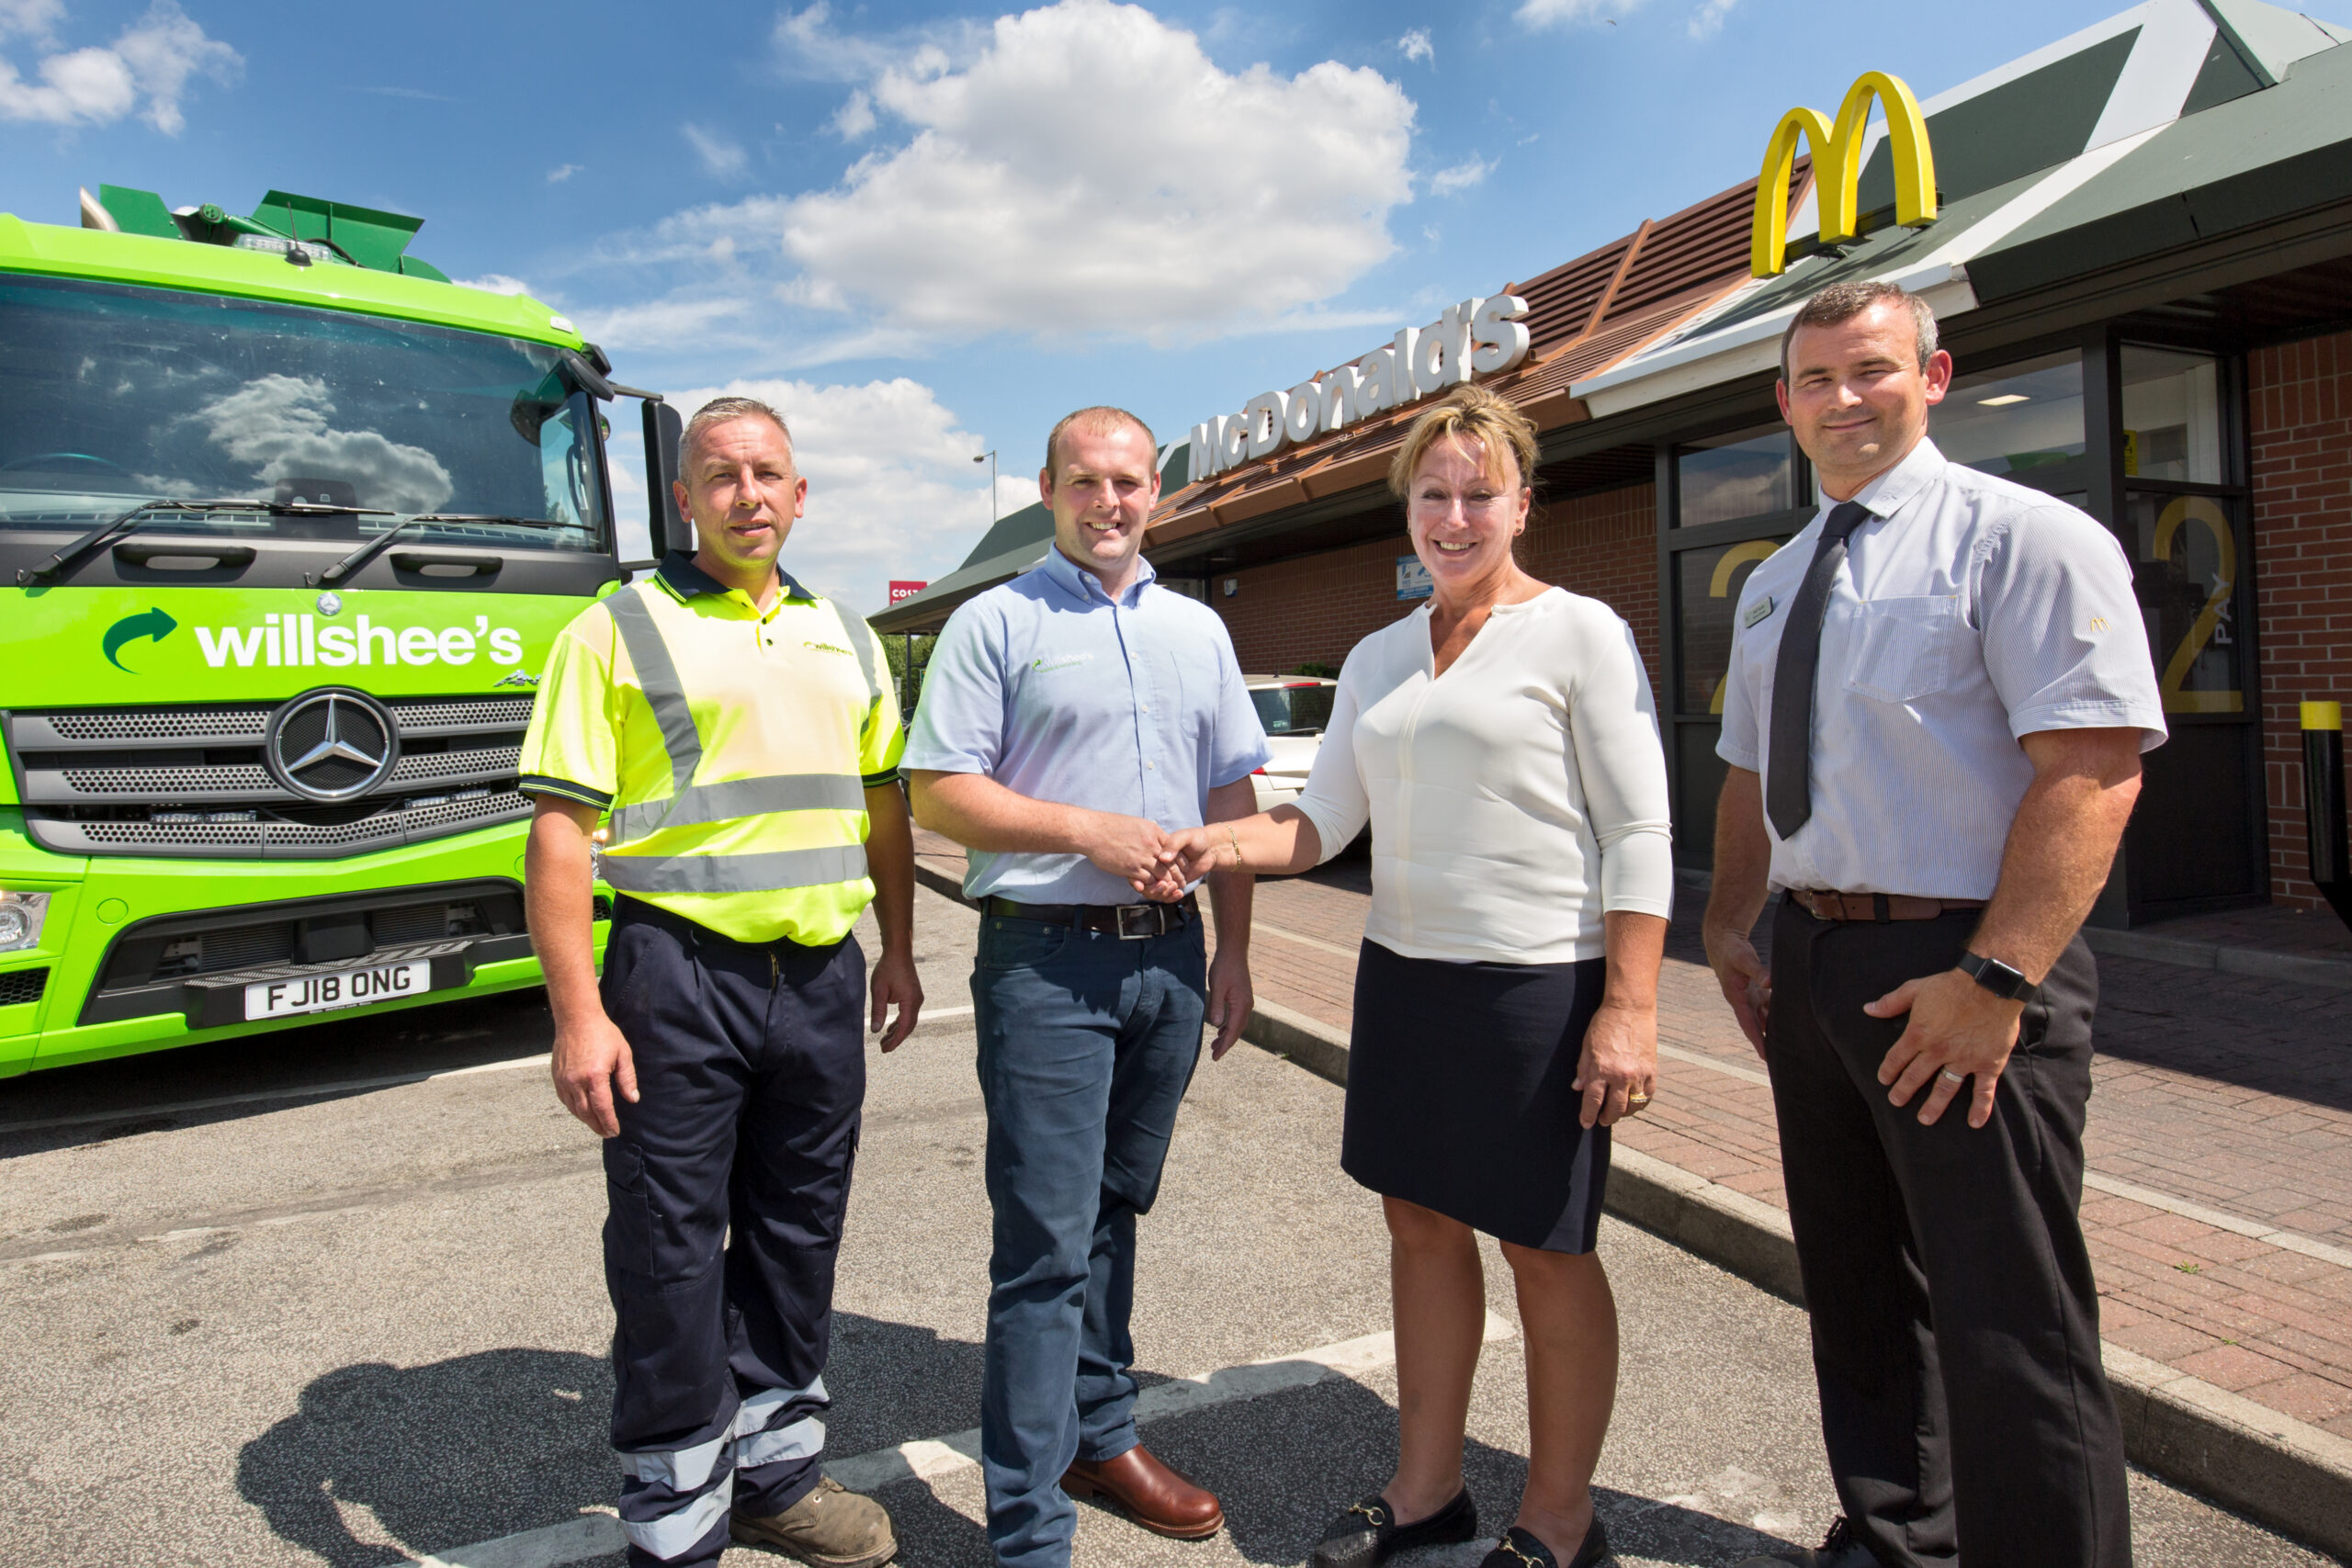 four people in front of waste lorry and McDonalds restaurant in Burton on Trent